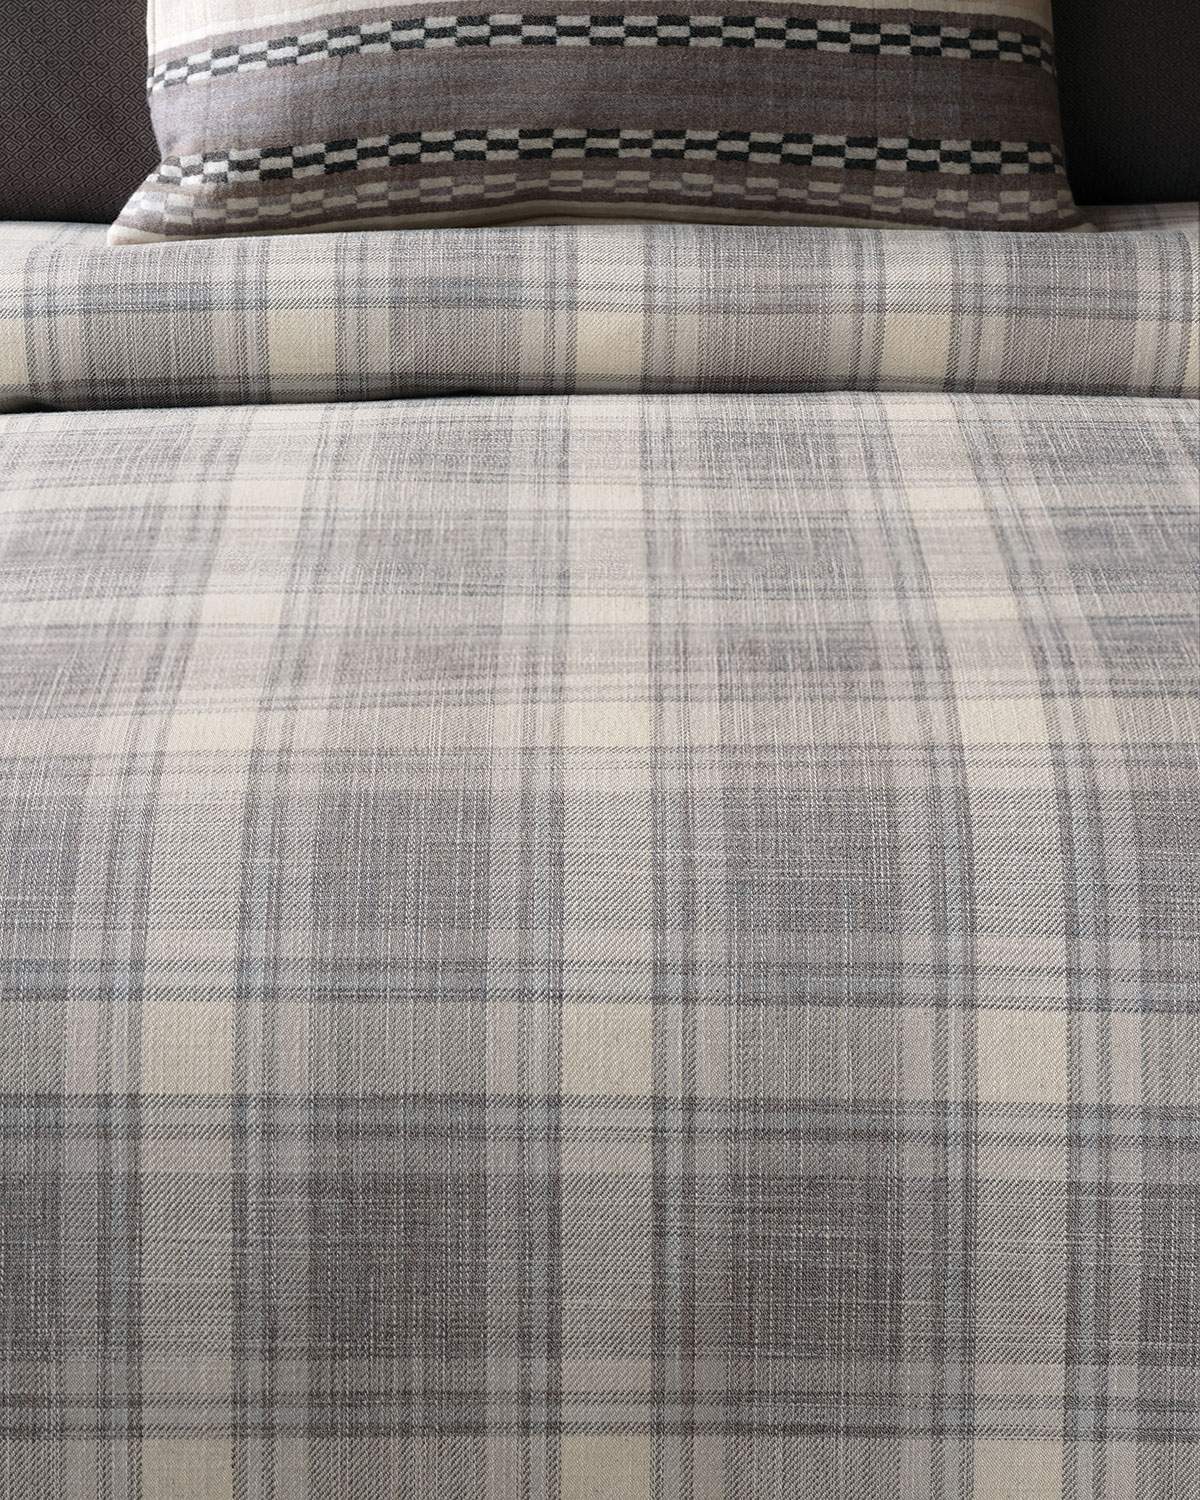 Eastern Accents Telluride Oversized King Duvet Cover Neiman Marcus